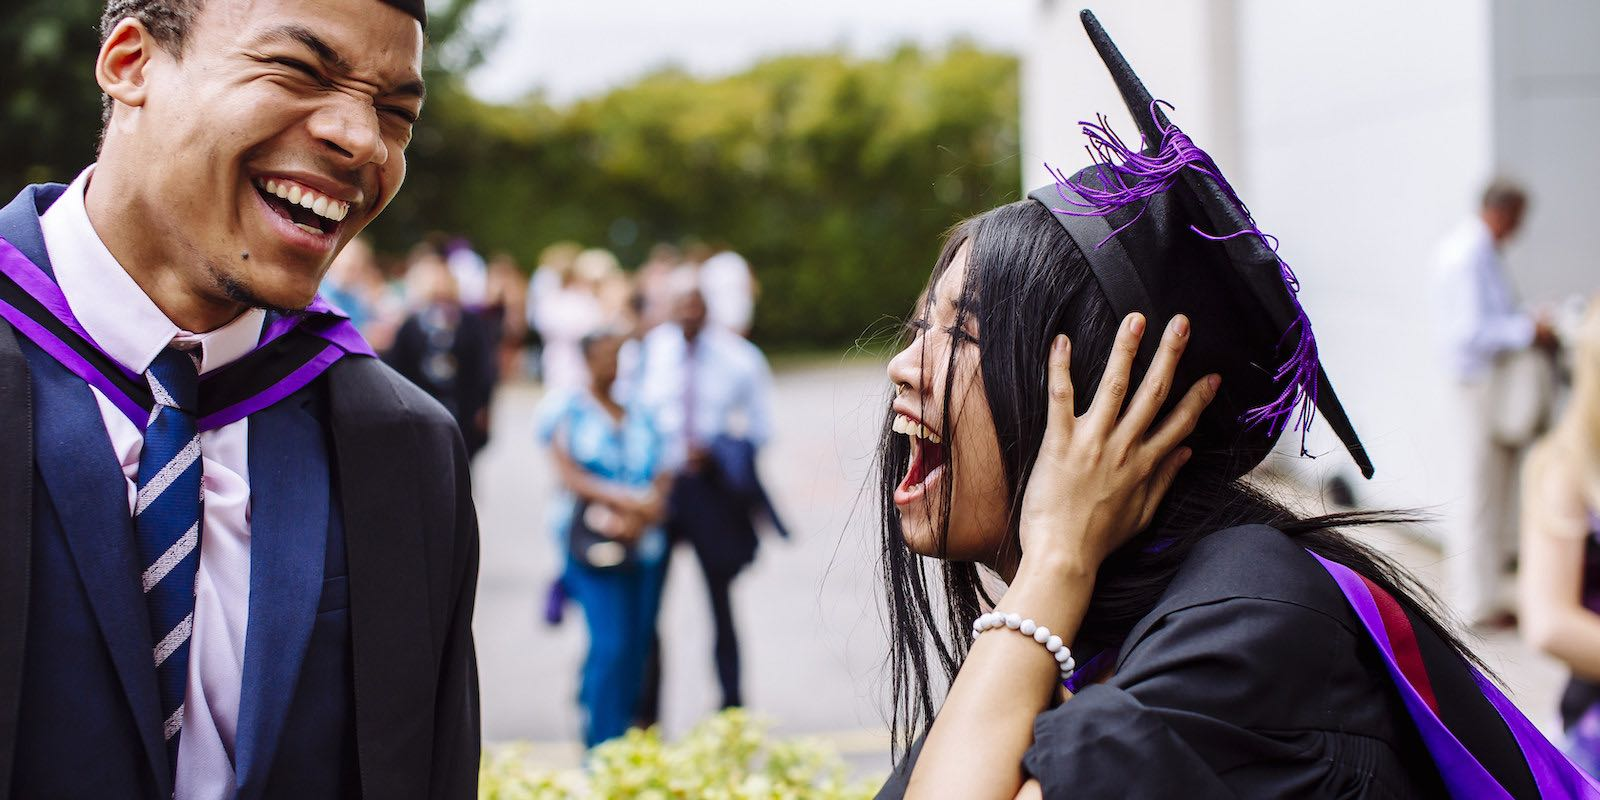 Male and female student celebrating graduation